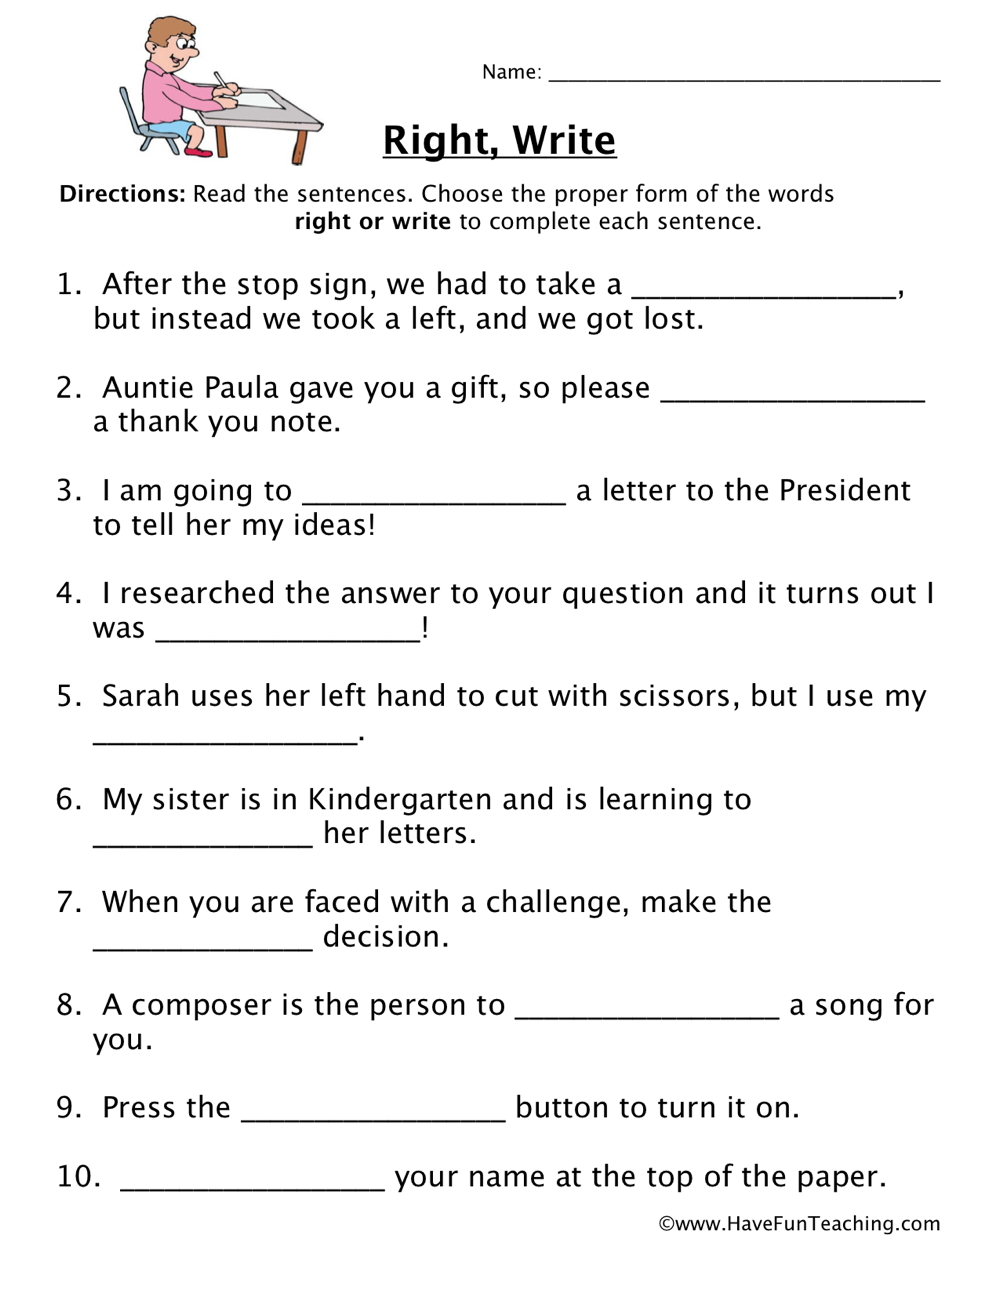 2nd Grade Homophones Worksheet : grade, homophones, worksheet, Right,, Write, Homophones, Worksheet, Teaching